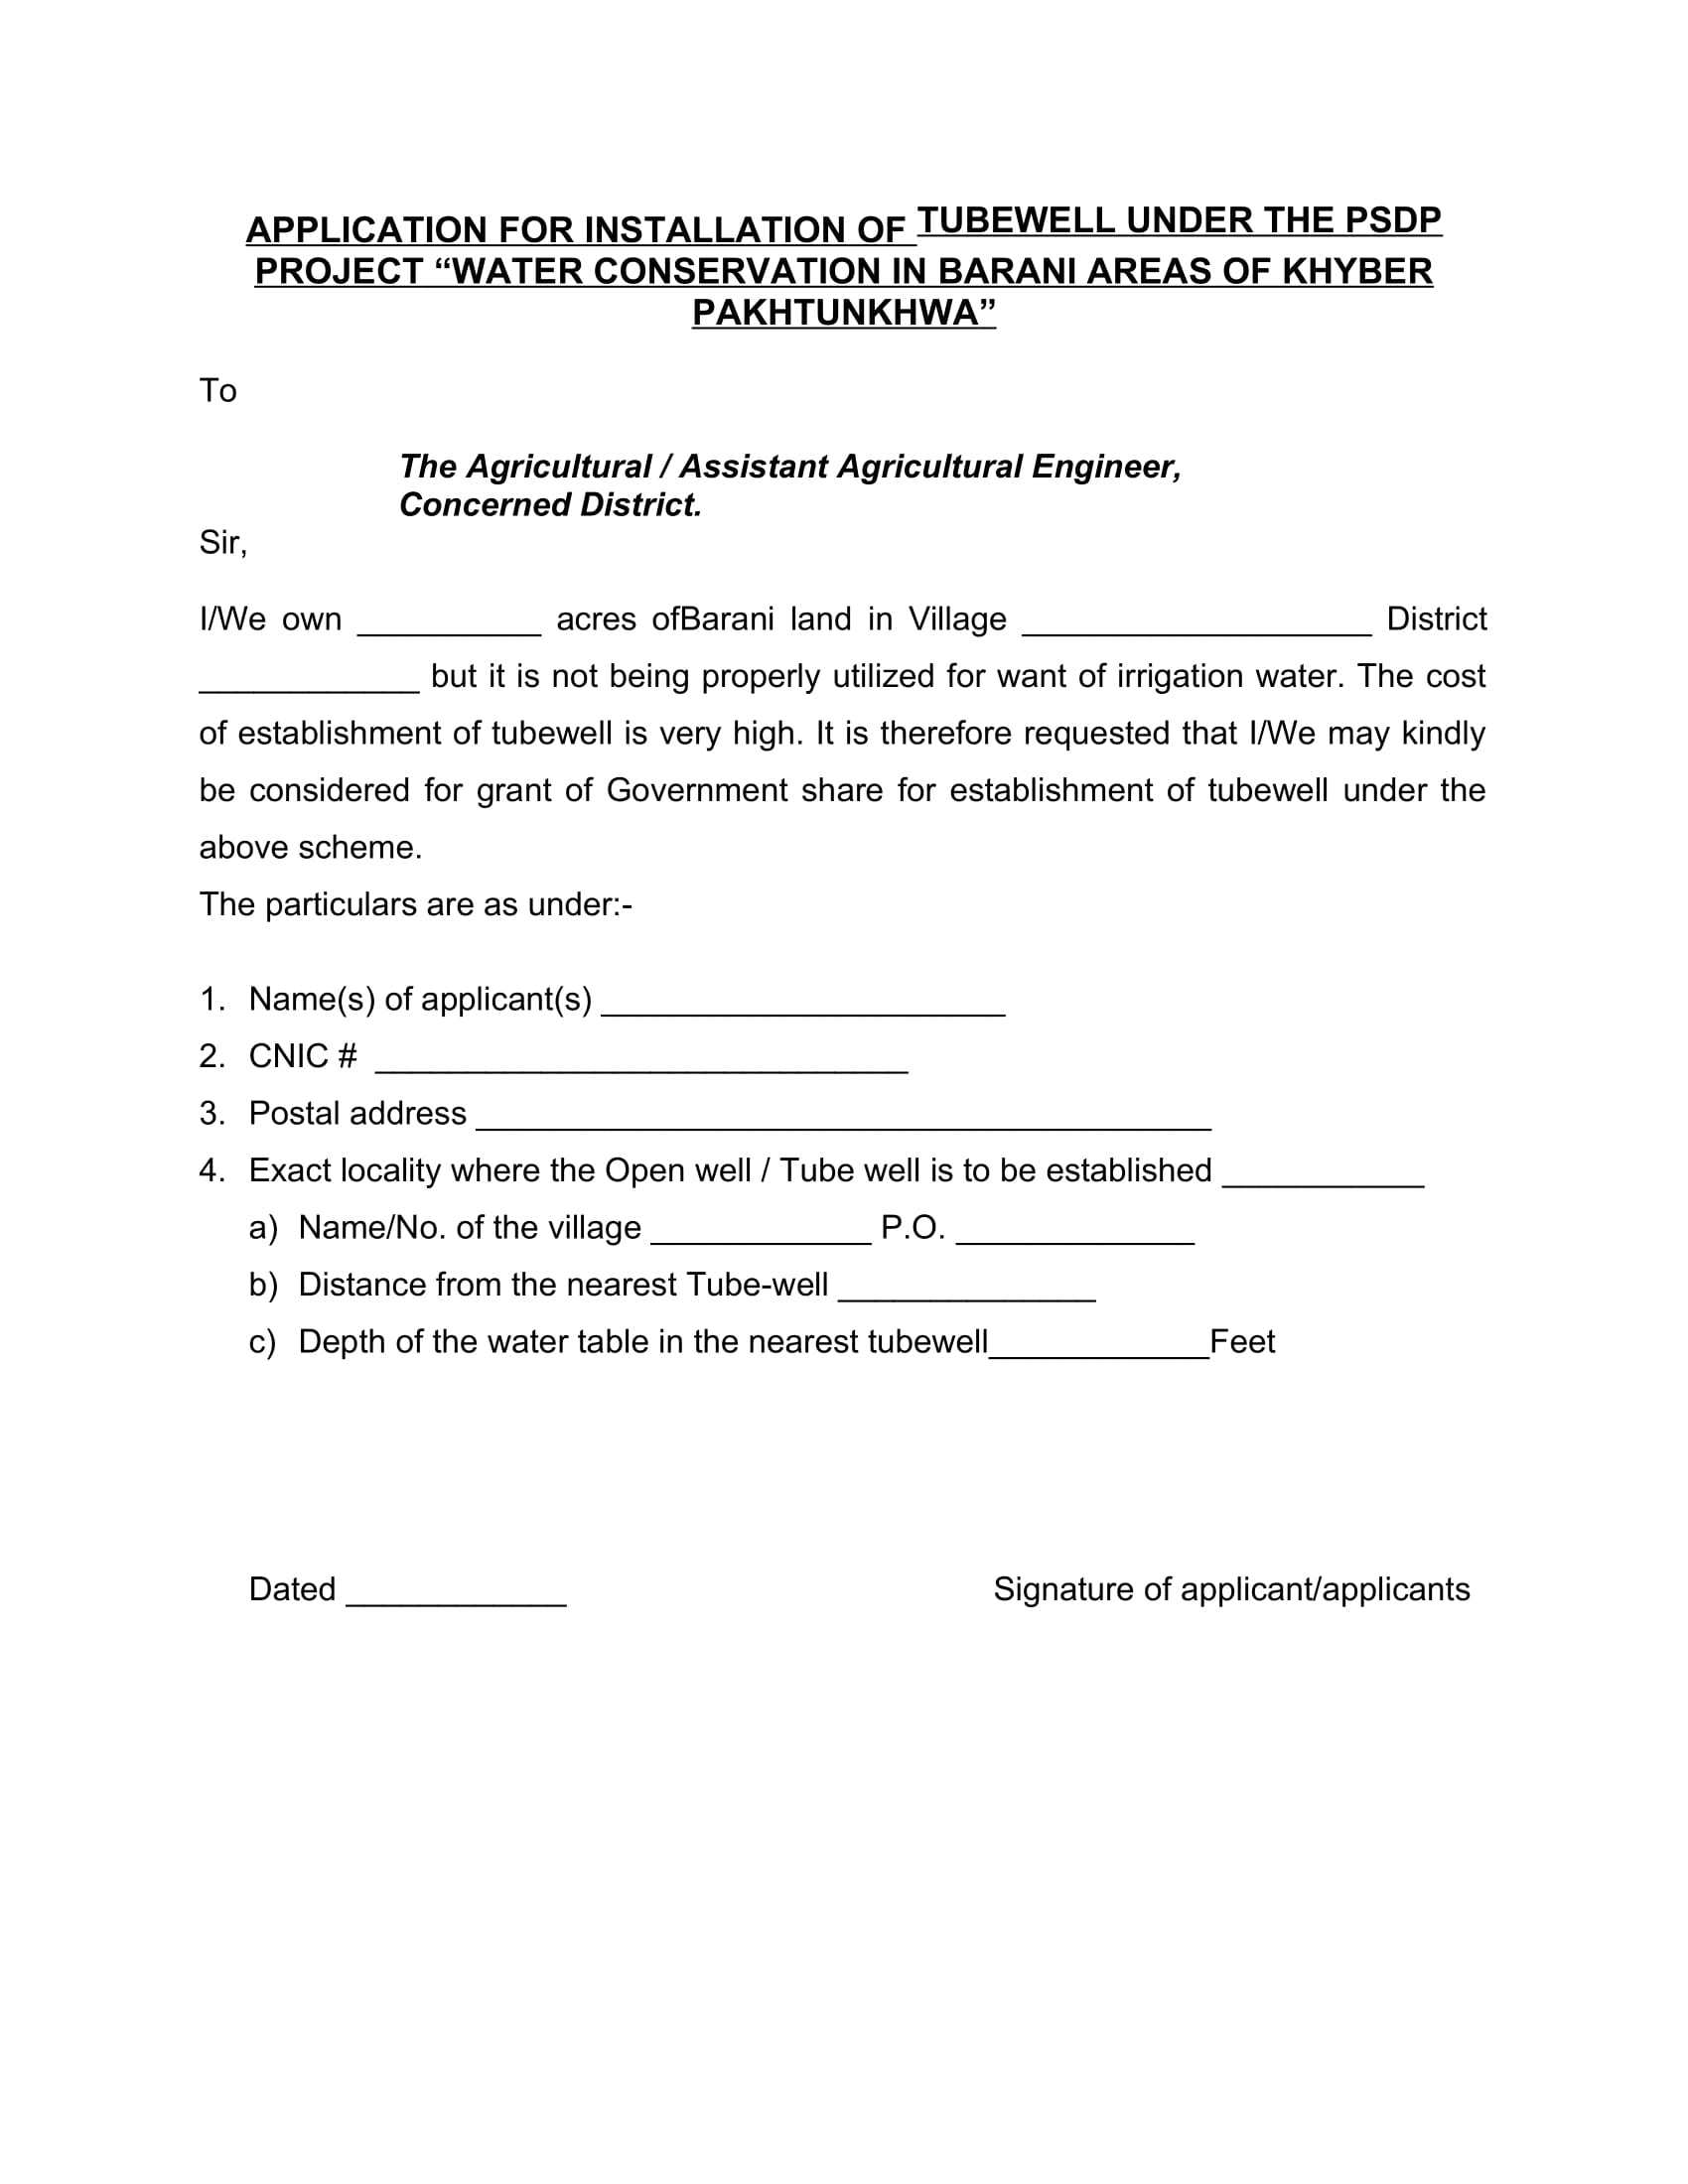 Application_Form_Tube_Well_PSDP_Project_(Water_Conservation_in_Barani_Areas_of_Khyber_Pakhtunkhwa)-1